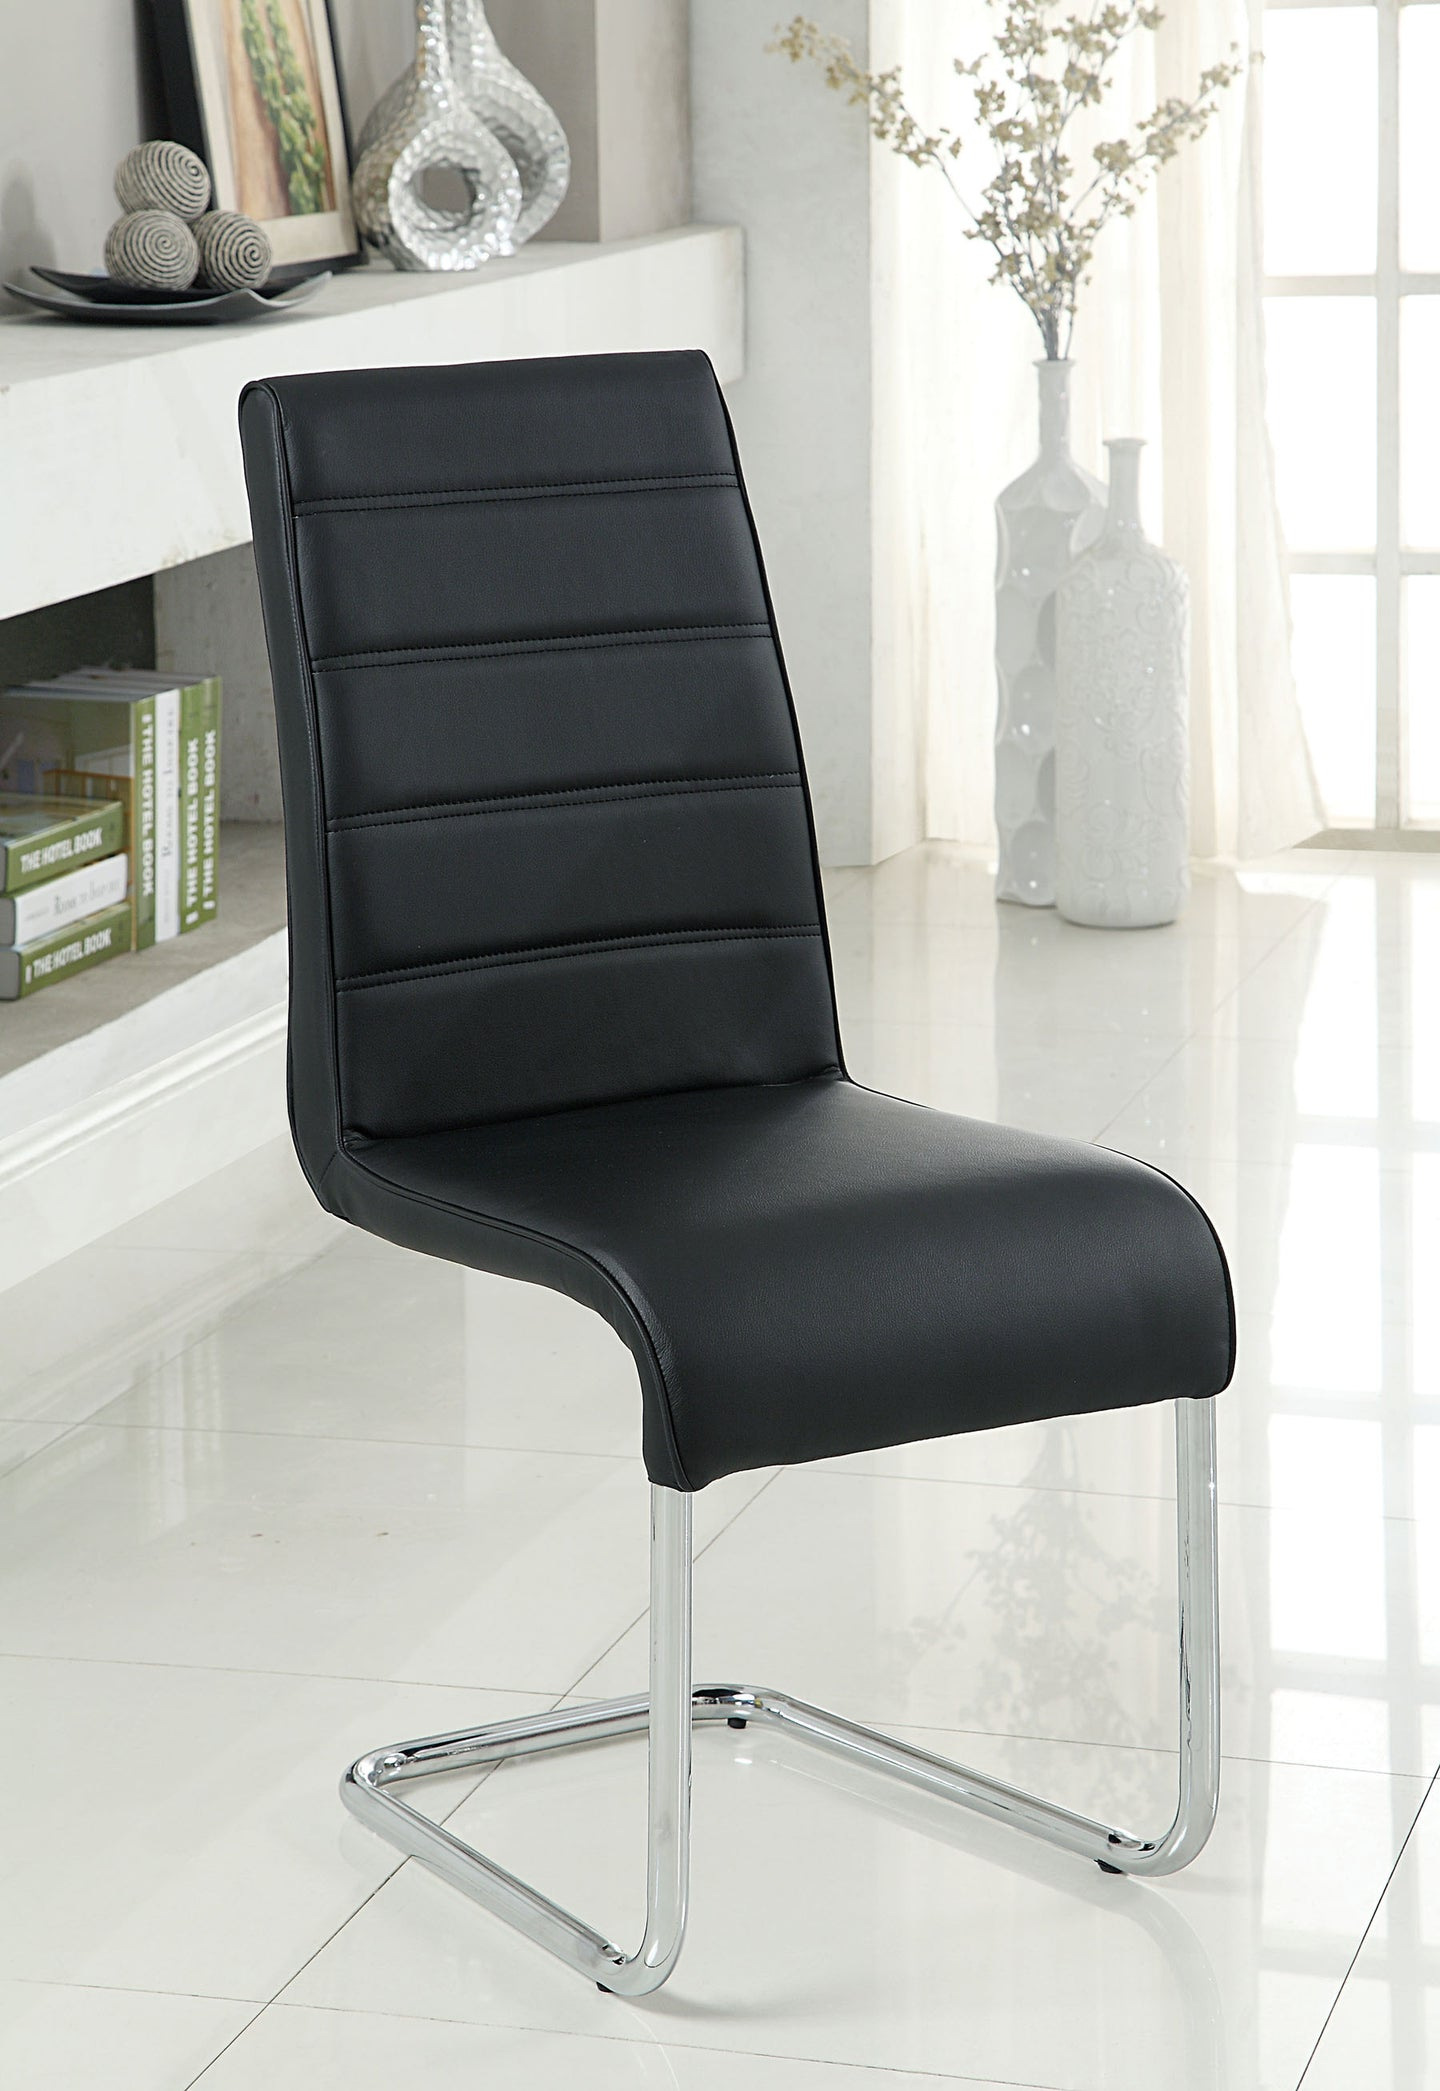 Mauna CM8371BK-SC Contemporary Black Chrome Legs Side Chair Set of 2